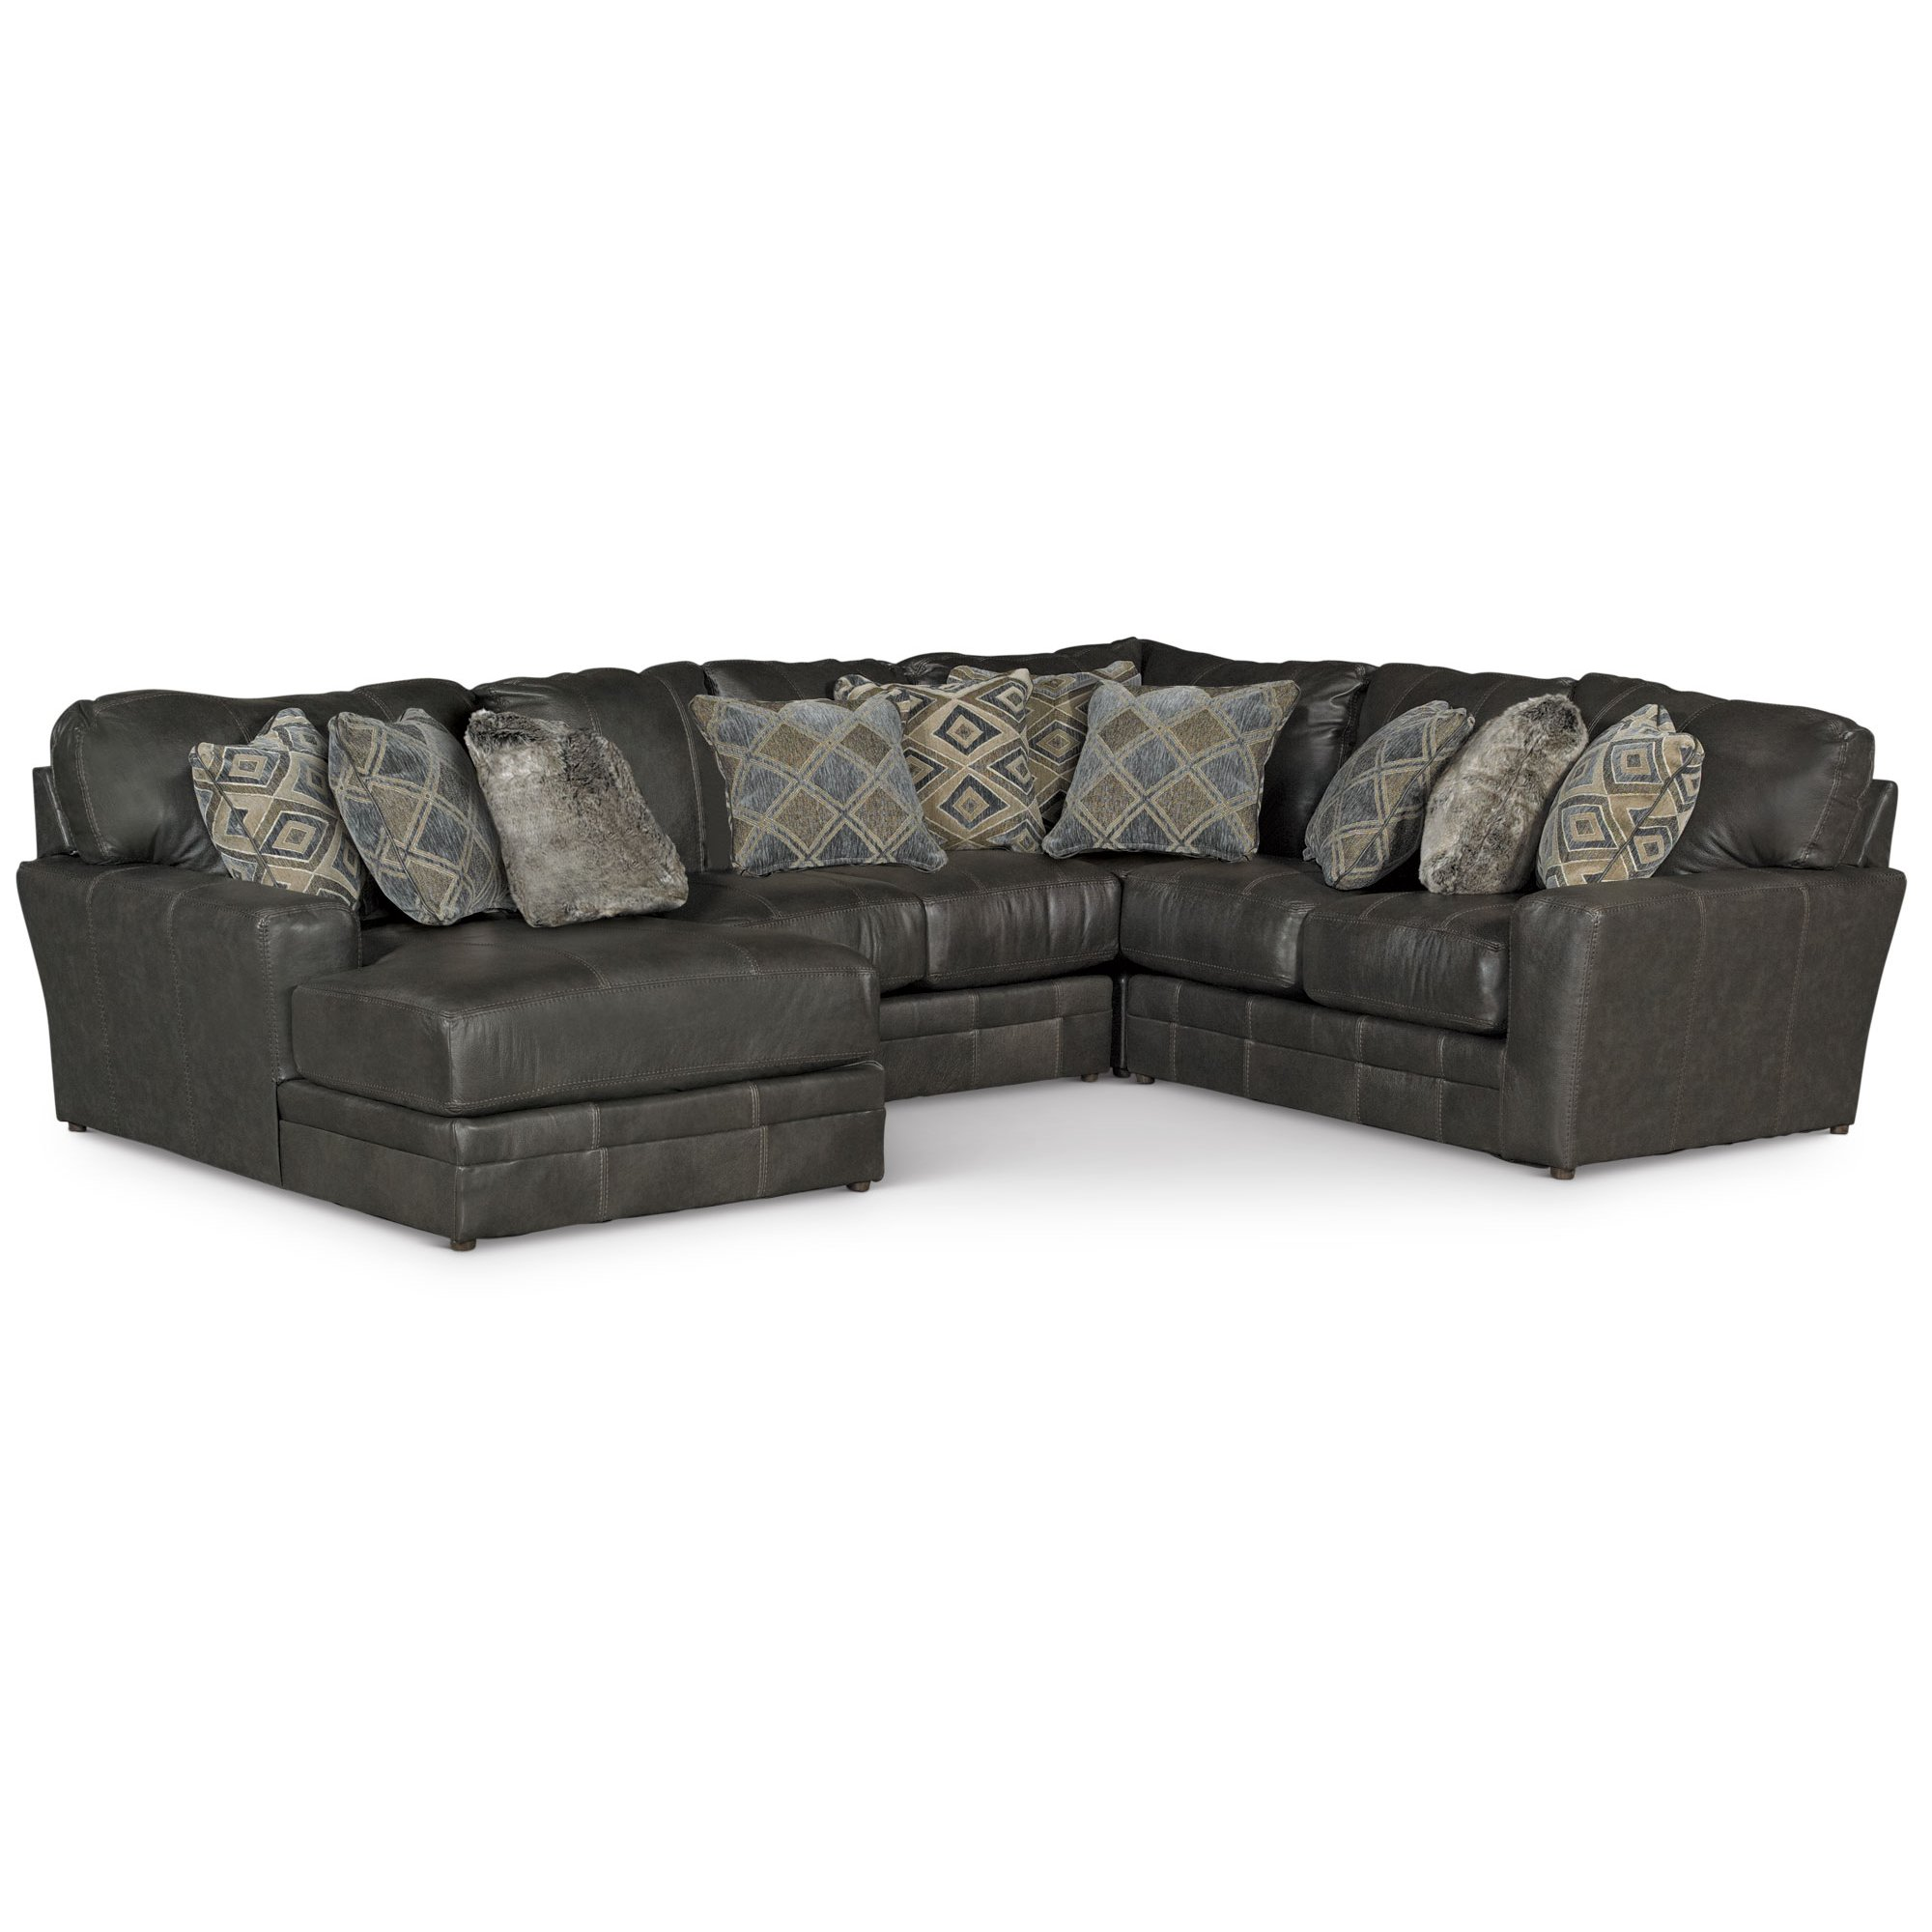 Casual Classic Steel Gray 4 Piece Sectional Sofa   Denali | RC Willey  Furniture Store